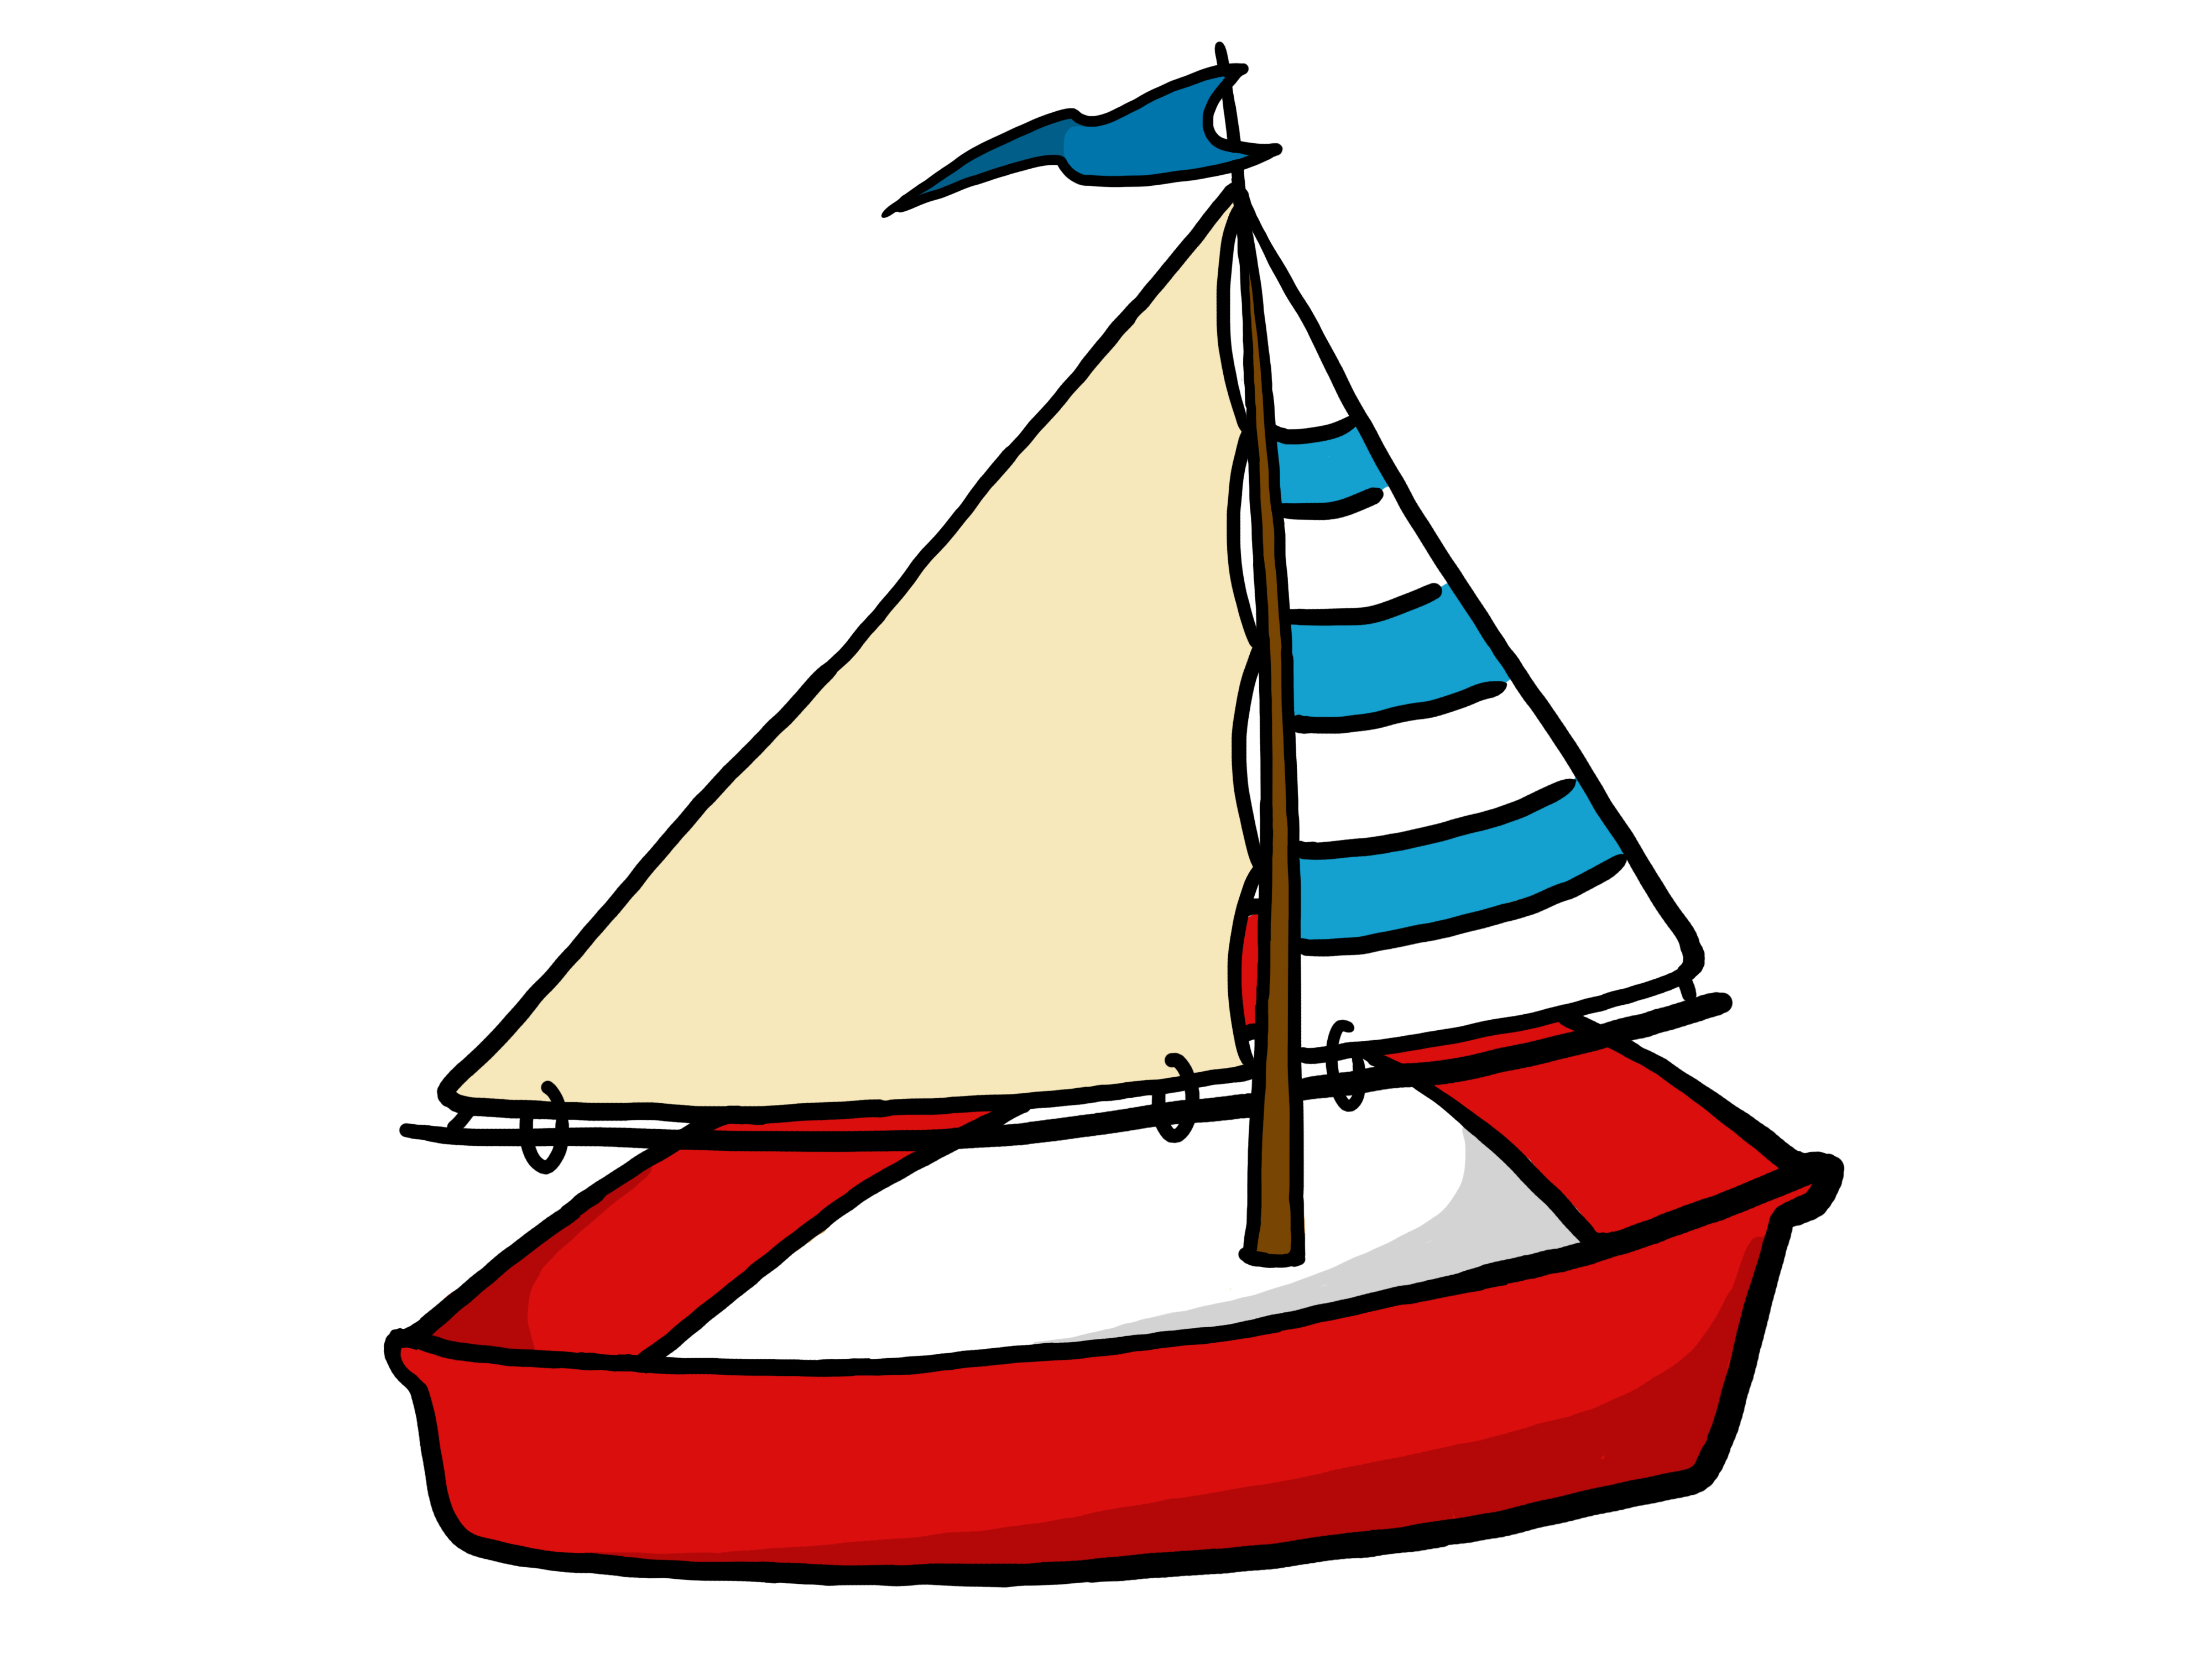 Boating Clipart Free Clipart Images-Boating clipart free clipart images-9